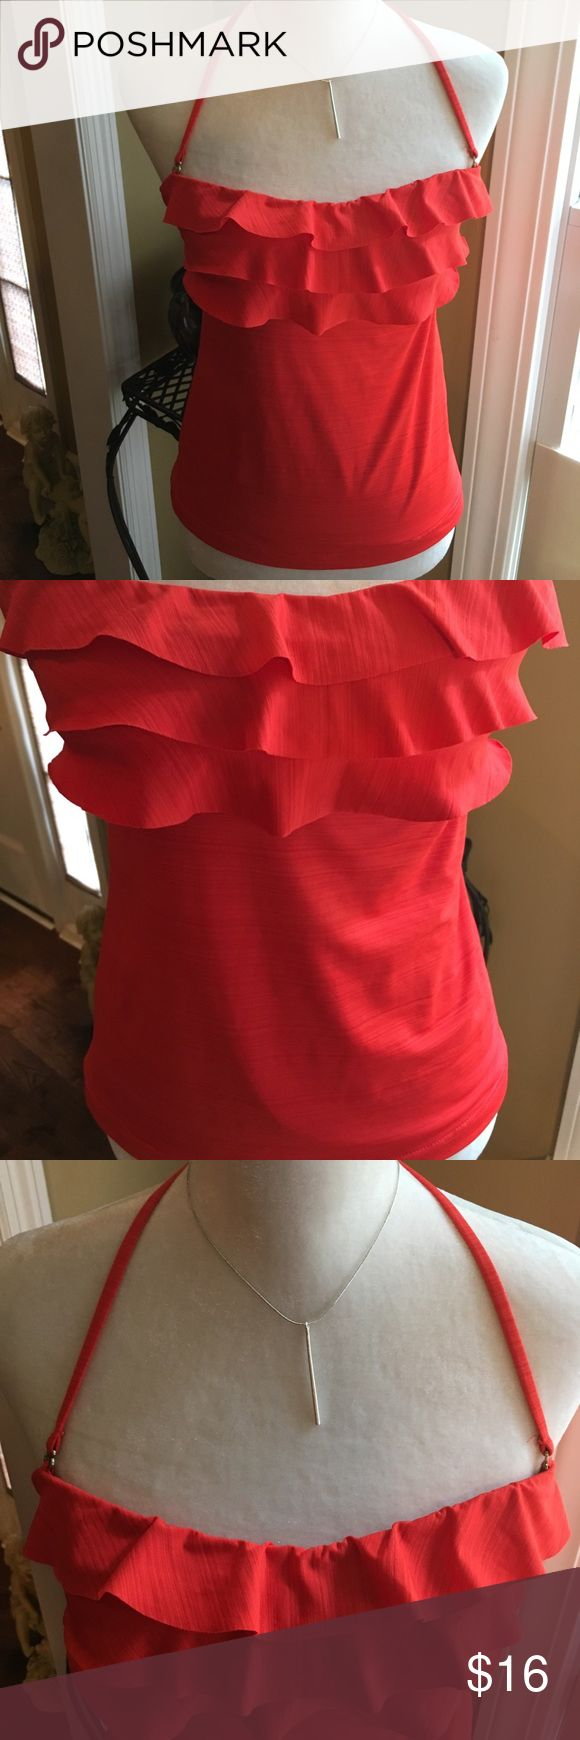 Gorgeous Burnt Orange Tankini Top Splash into Summer wearing this Citrus Orange Ruffle Front Tankini by Mossimo. Size Small. Really Cute. Like New!!! Swim